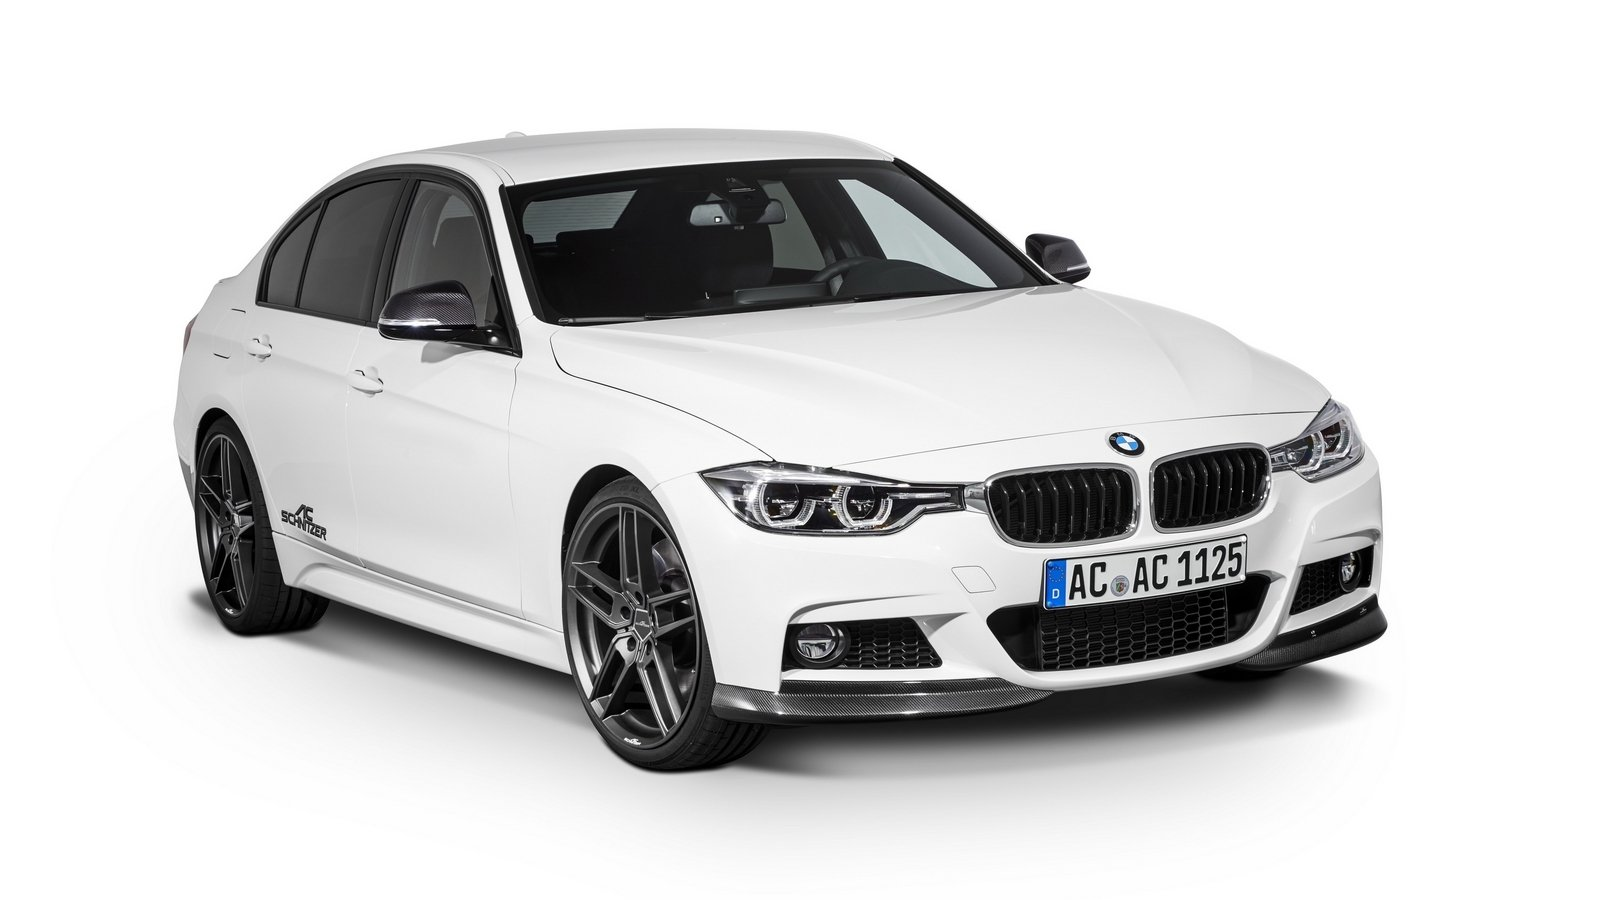 2015 bmw 3 series lci by ac schnitzer picture 657867 car review. Black Bedroom Furniture Sets. Home Design Ideas